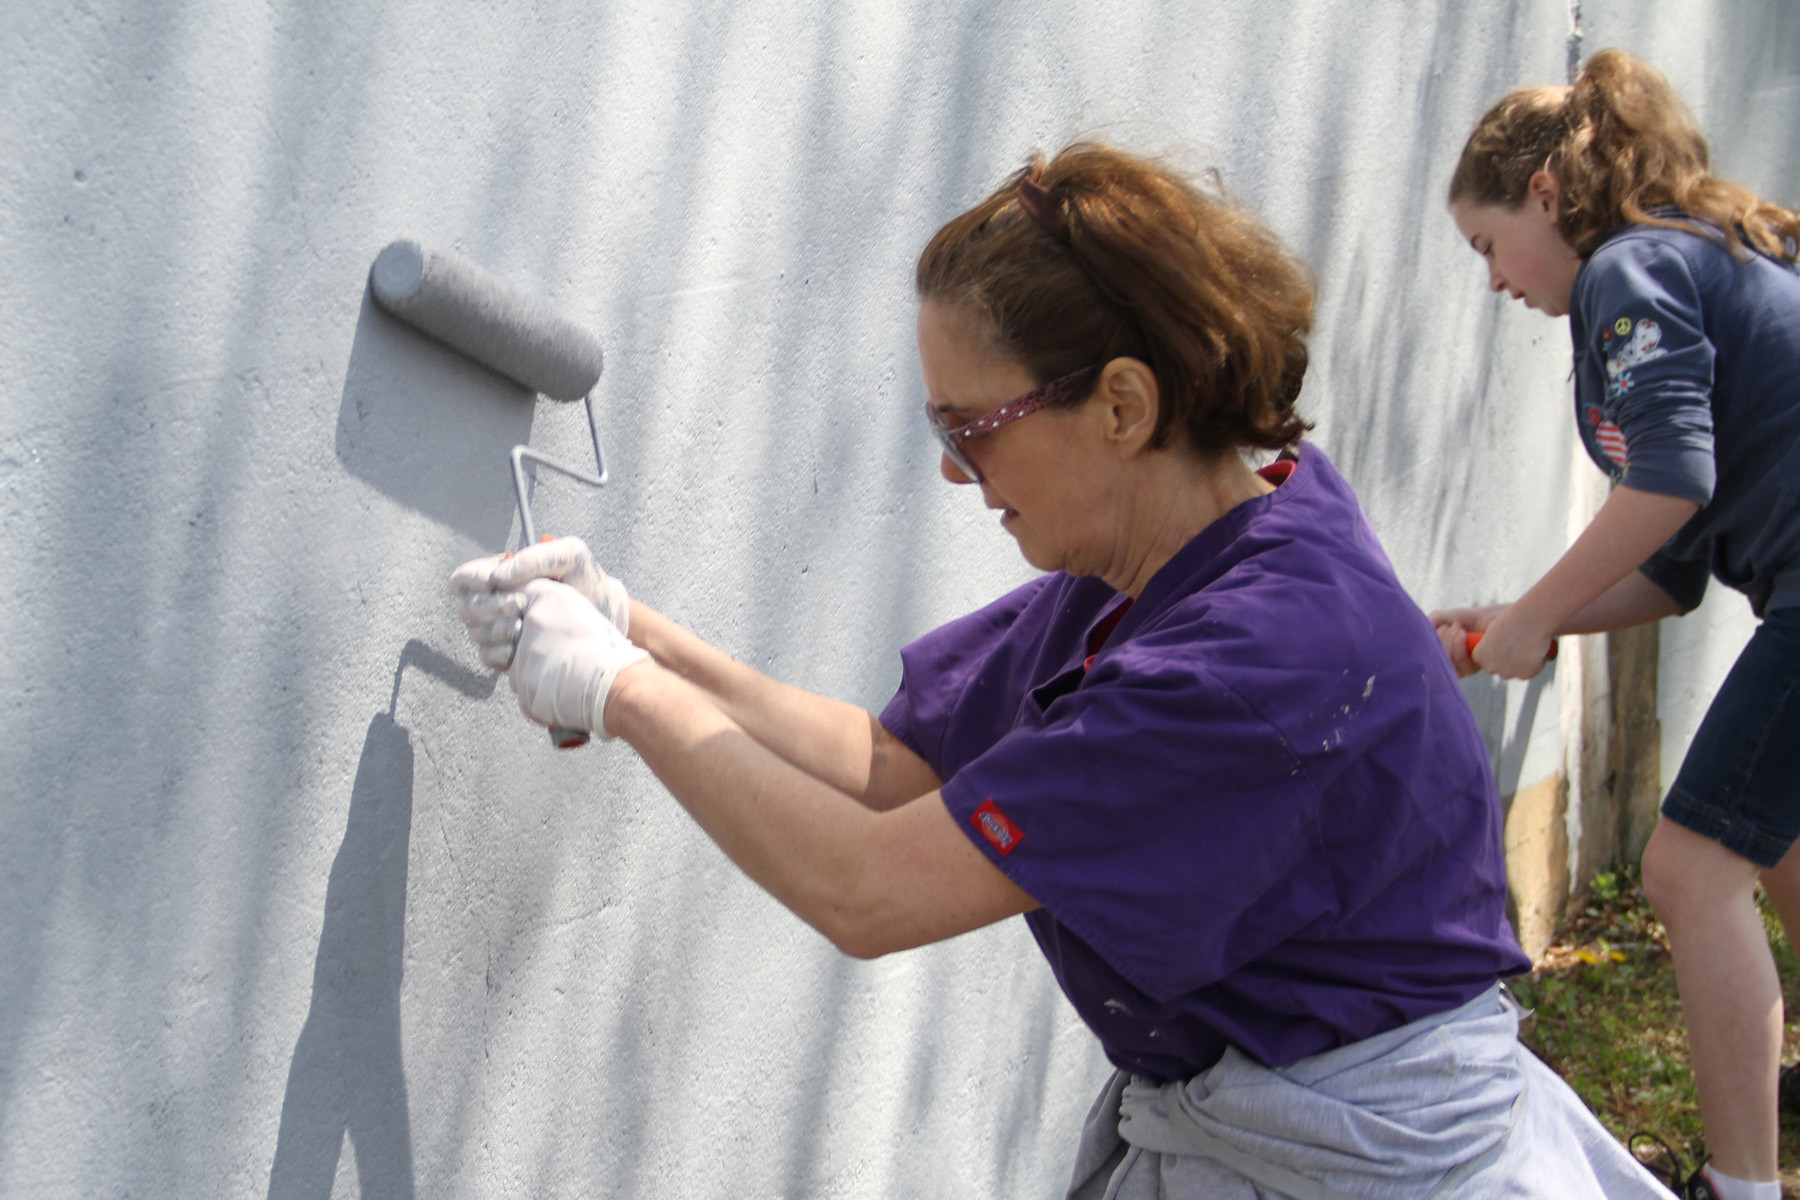 Debbie Laskin and Erin Laxton were among the many volunteers from Envision Valley Stream who painted the Long Island Rail Road trestle wall on April 28.